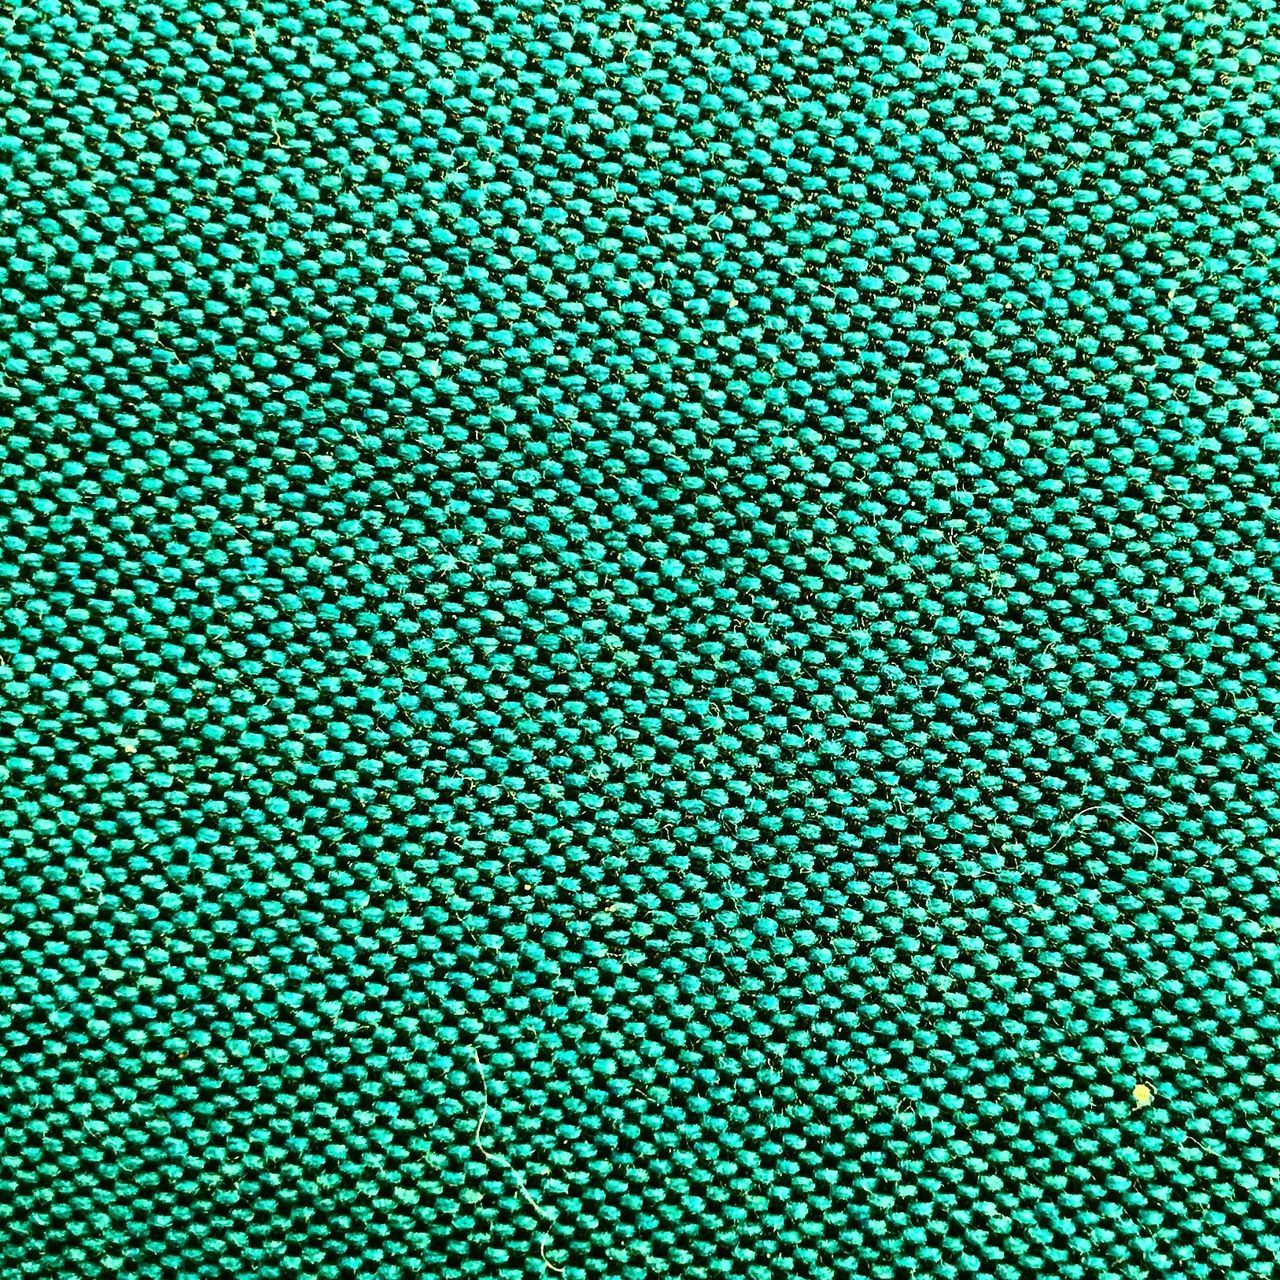 backgrounds, full frame, pattern, textured, close-up, green color, no people, textile, blue, indoors, material, shape, flooring, green, design, abstract, repetition, high angle view, woven, textured effect